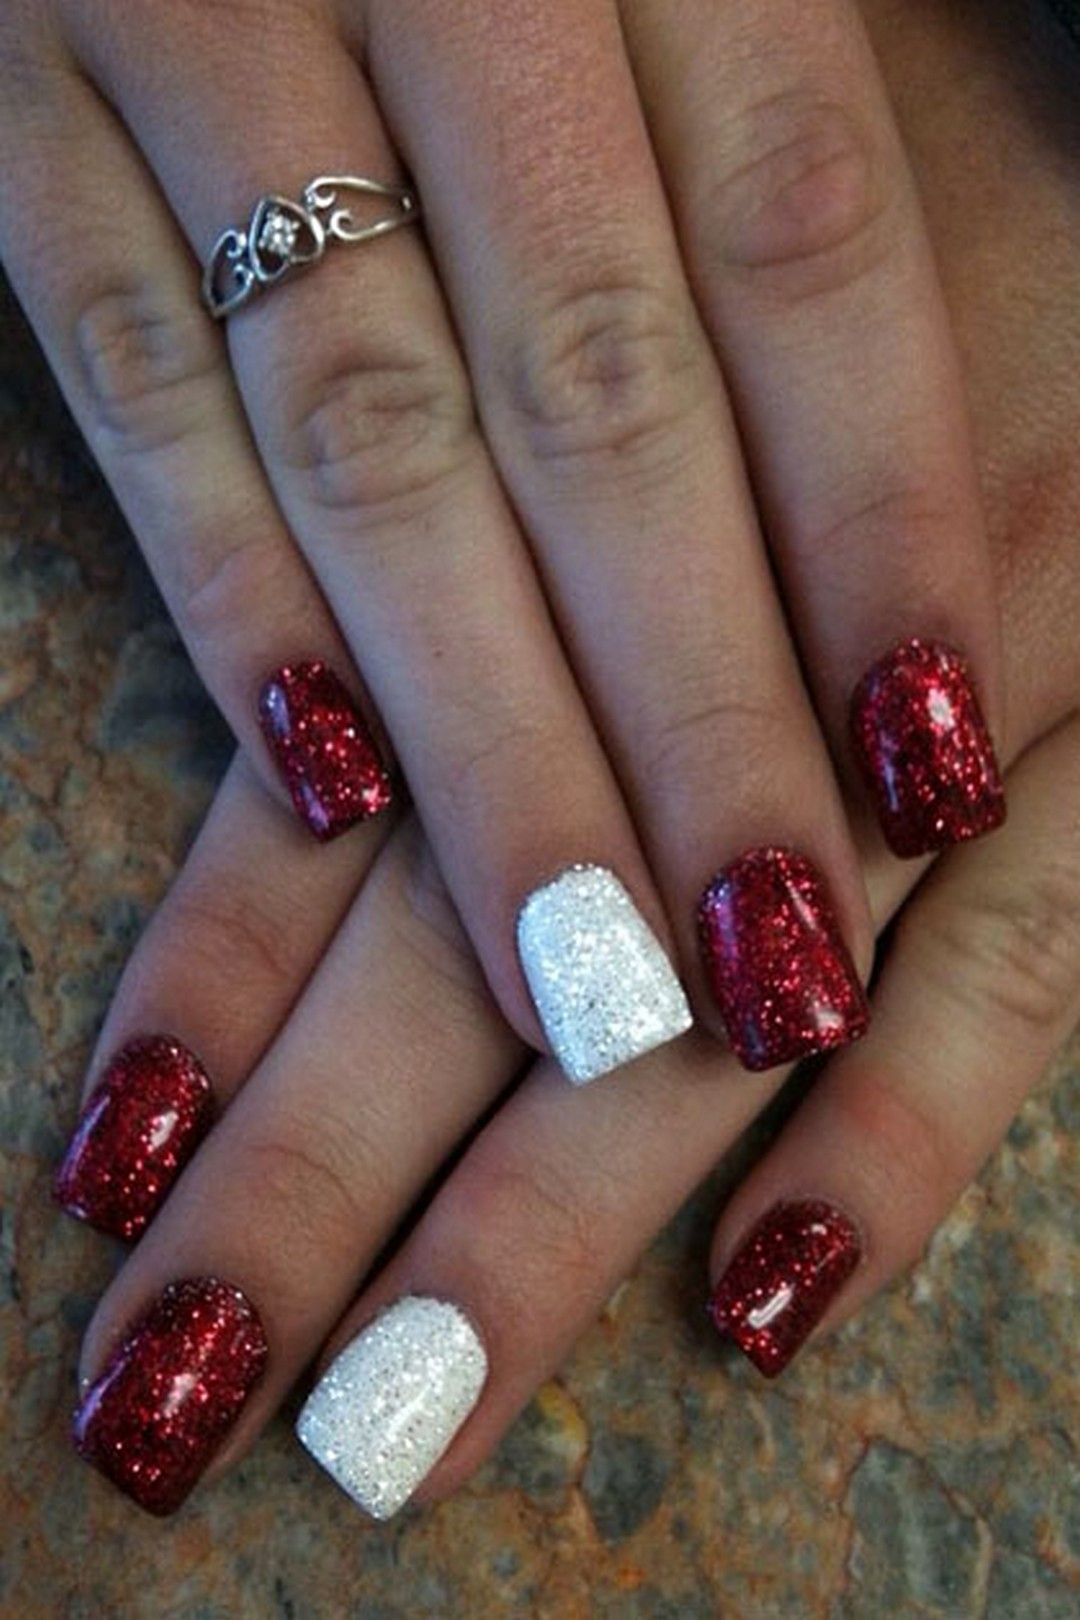 20 beautiful nails acrylic design for christmas 2017 httpswwwvanchitecturecom2017120720 beautiful nails acrylic design christmas 2017